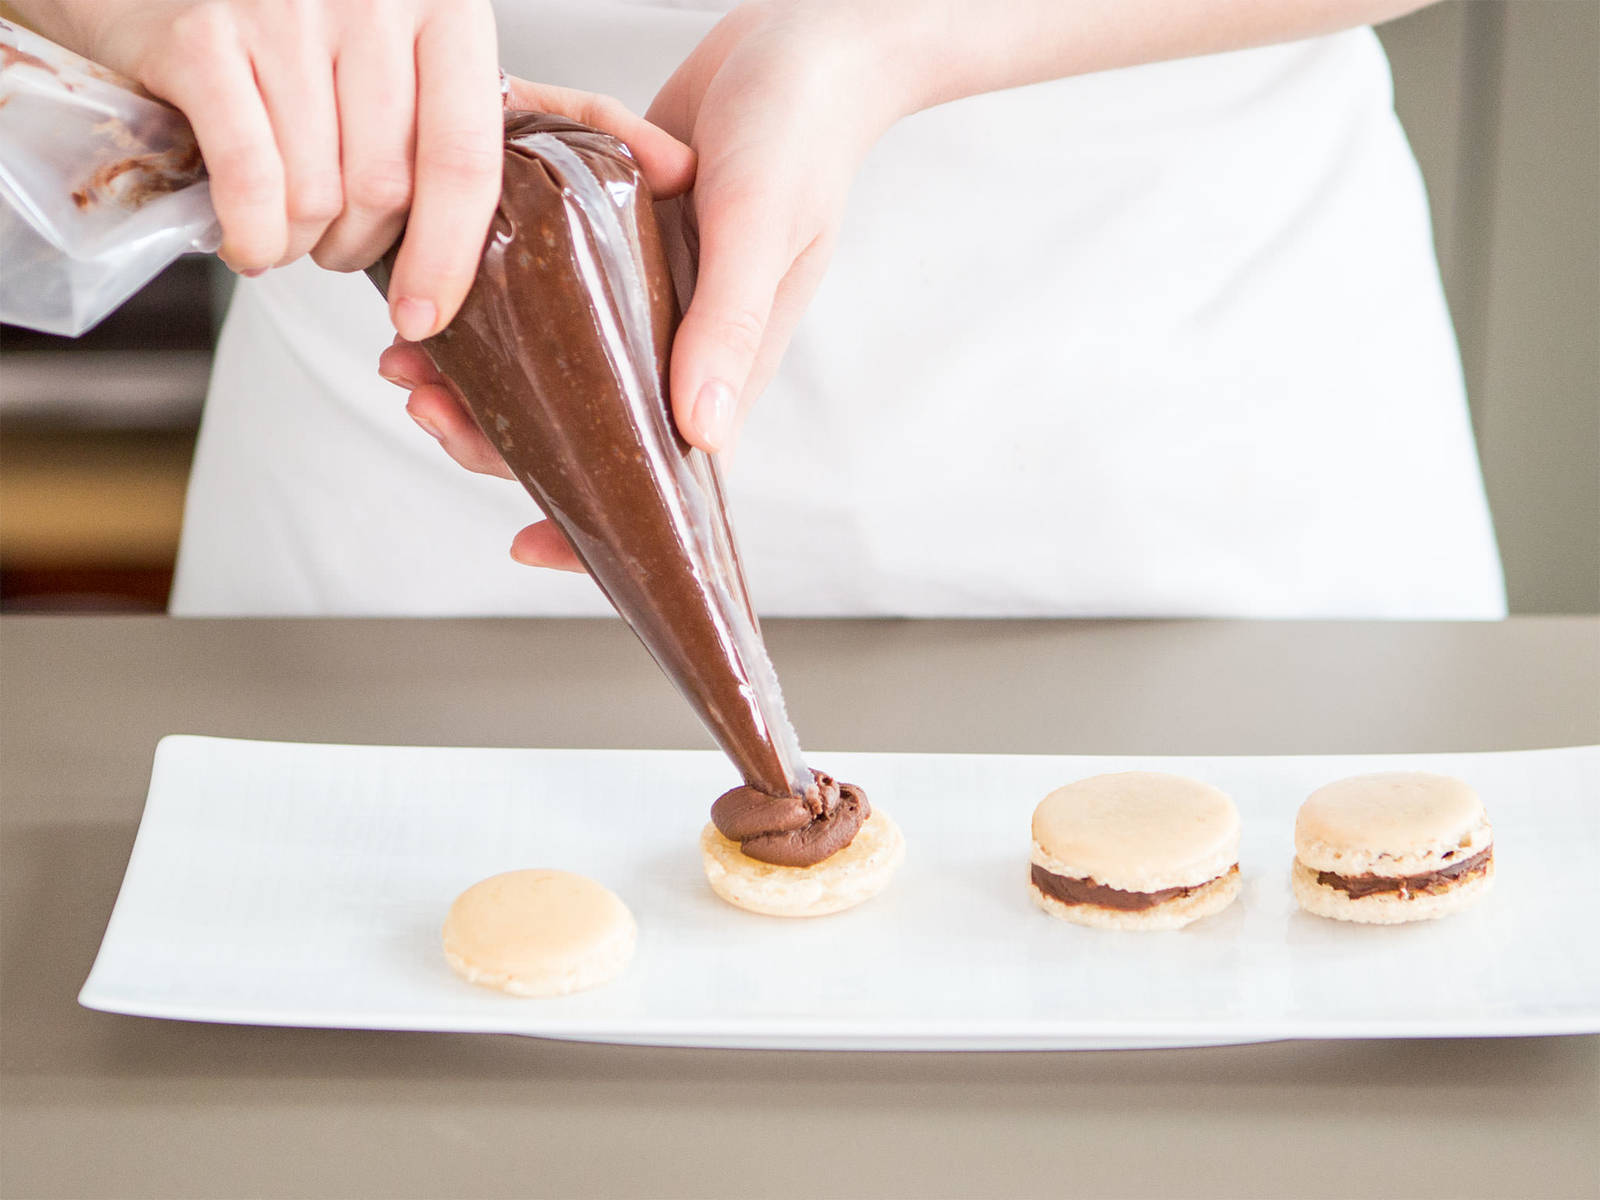 Pipe coffee buttercream onto the bottom half of a macaron. Place another half on top and lightly press. Repeat until macarons are assembled. Enjoy with a cup of coffee!